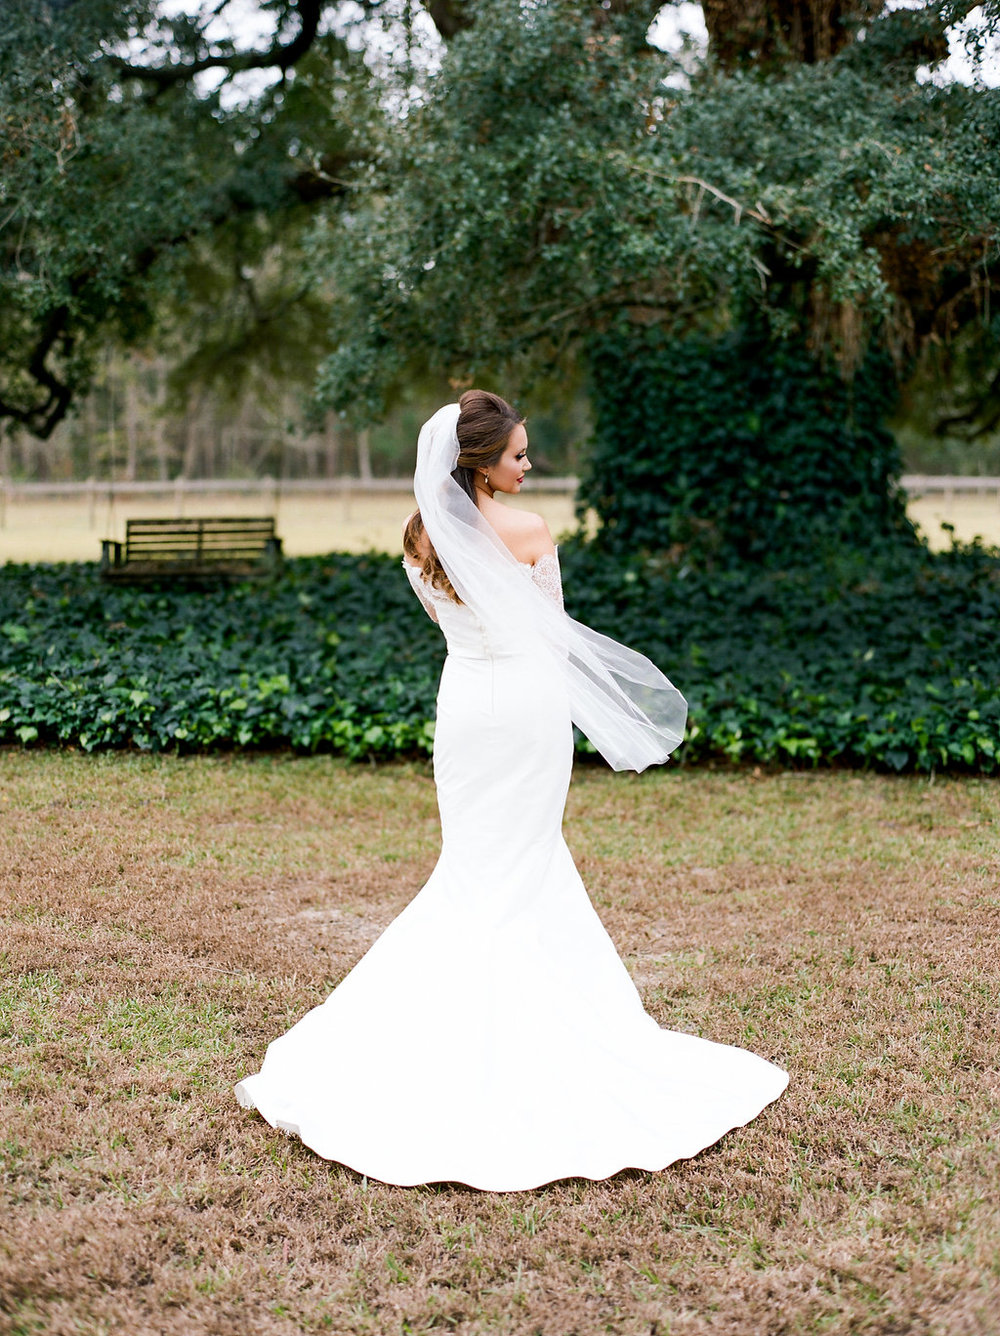 mps-photographie-nicole-miller-dakota-savannah-bridal-boutique-ivory-and-beau-bridal-boutique-savannah-weddings-savannah-bride-southern-bride-savannah-weddings-adele-amelia-veil-18.jpg